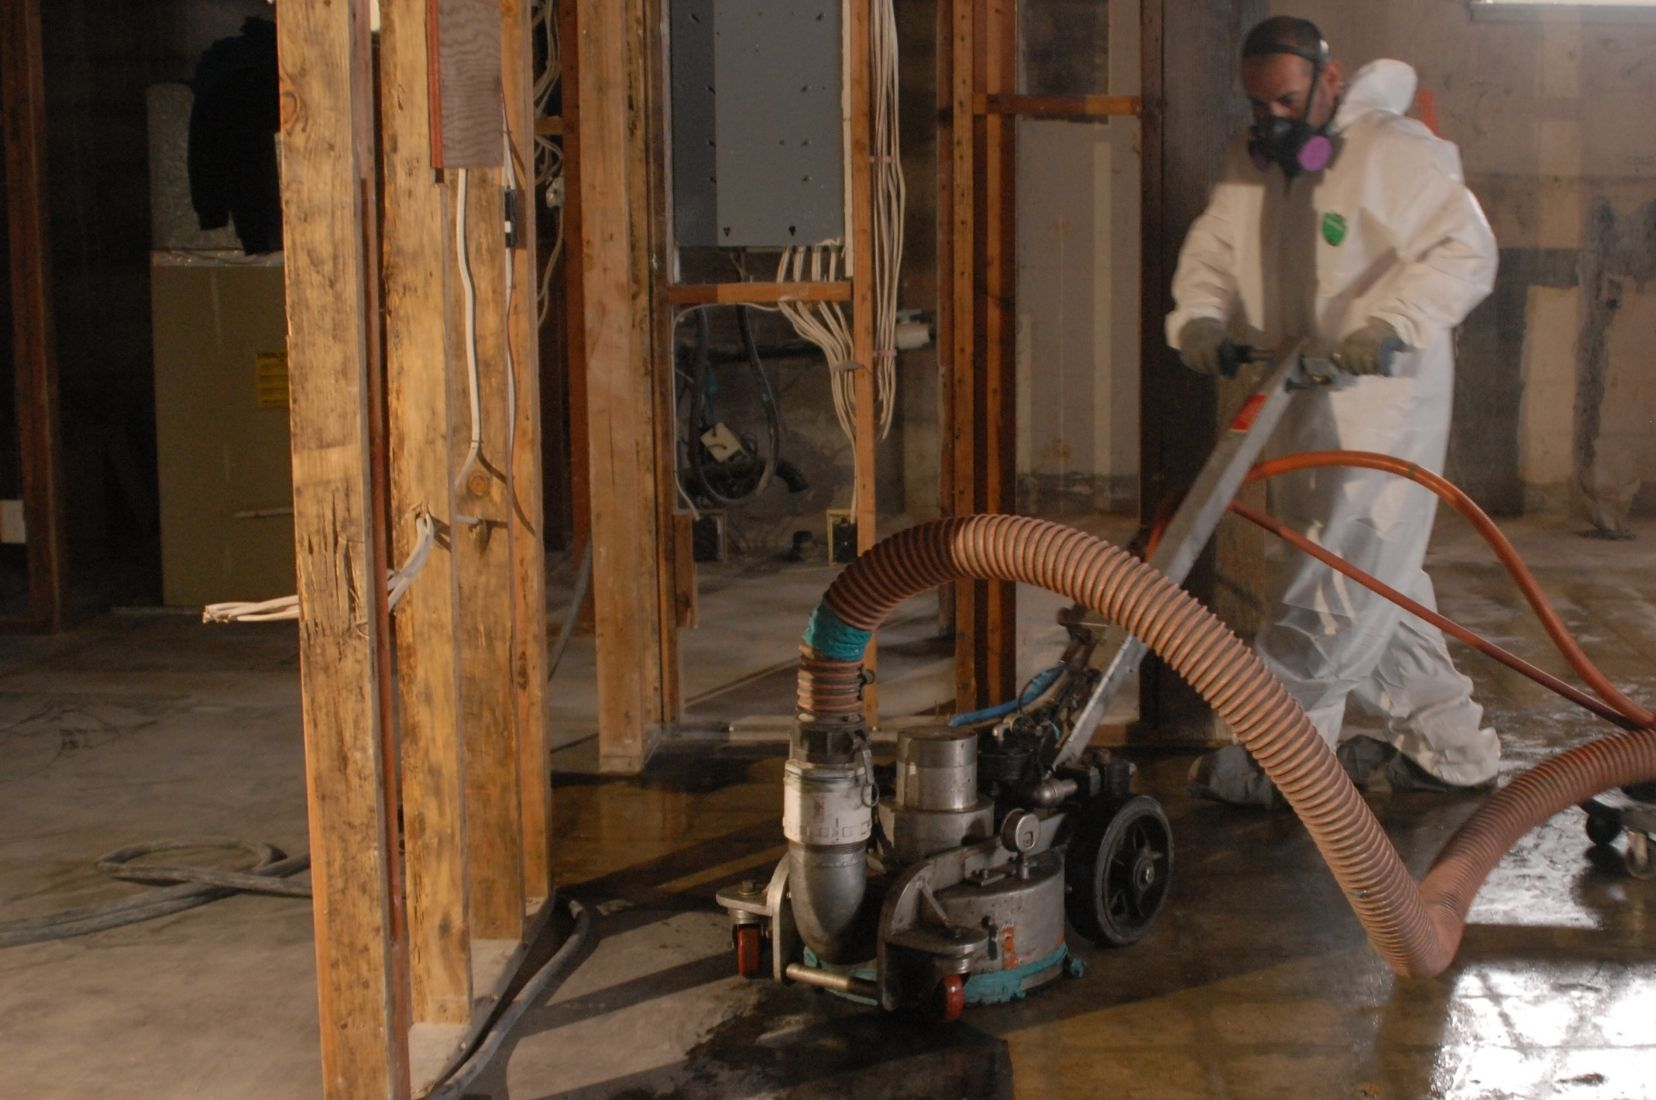 MESS Clean Up worksite with selective demolition and floor cleaning. Serving California's Central Coast with Asbestos, Mold, Lead, and Selective Demolition